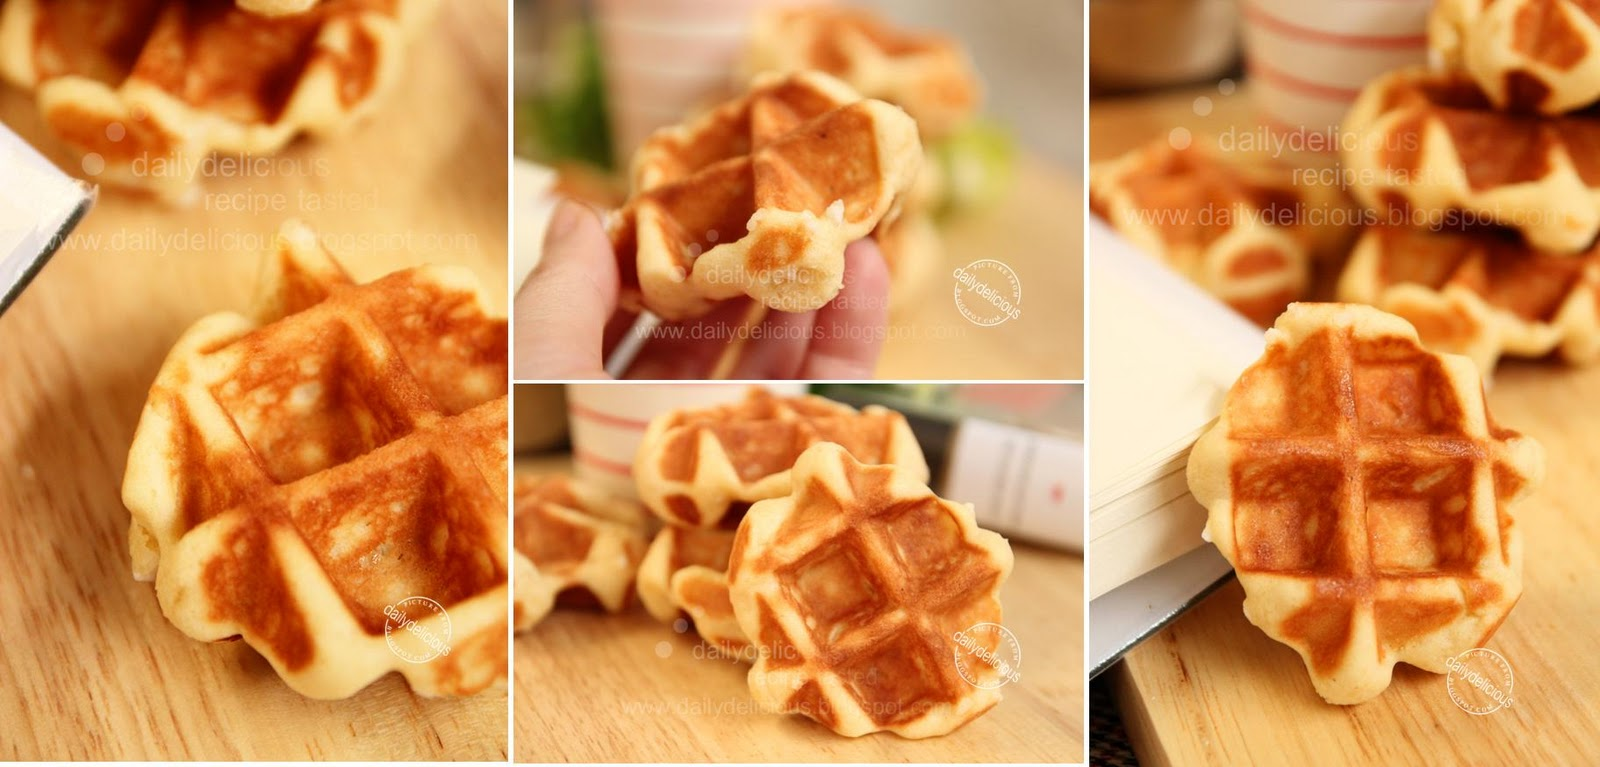 ... waffle: No need to knead, and you still get a delicious waffle